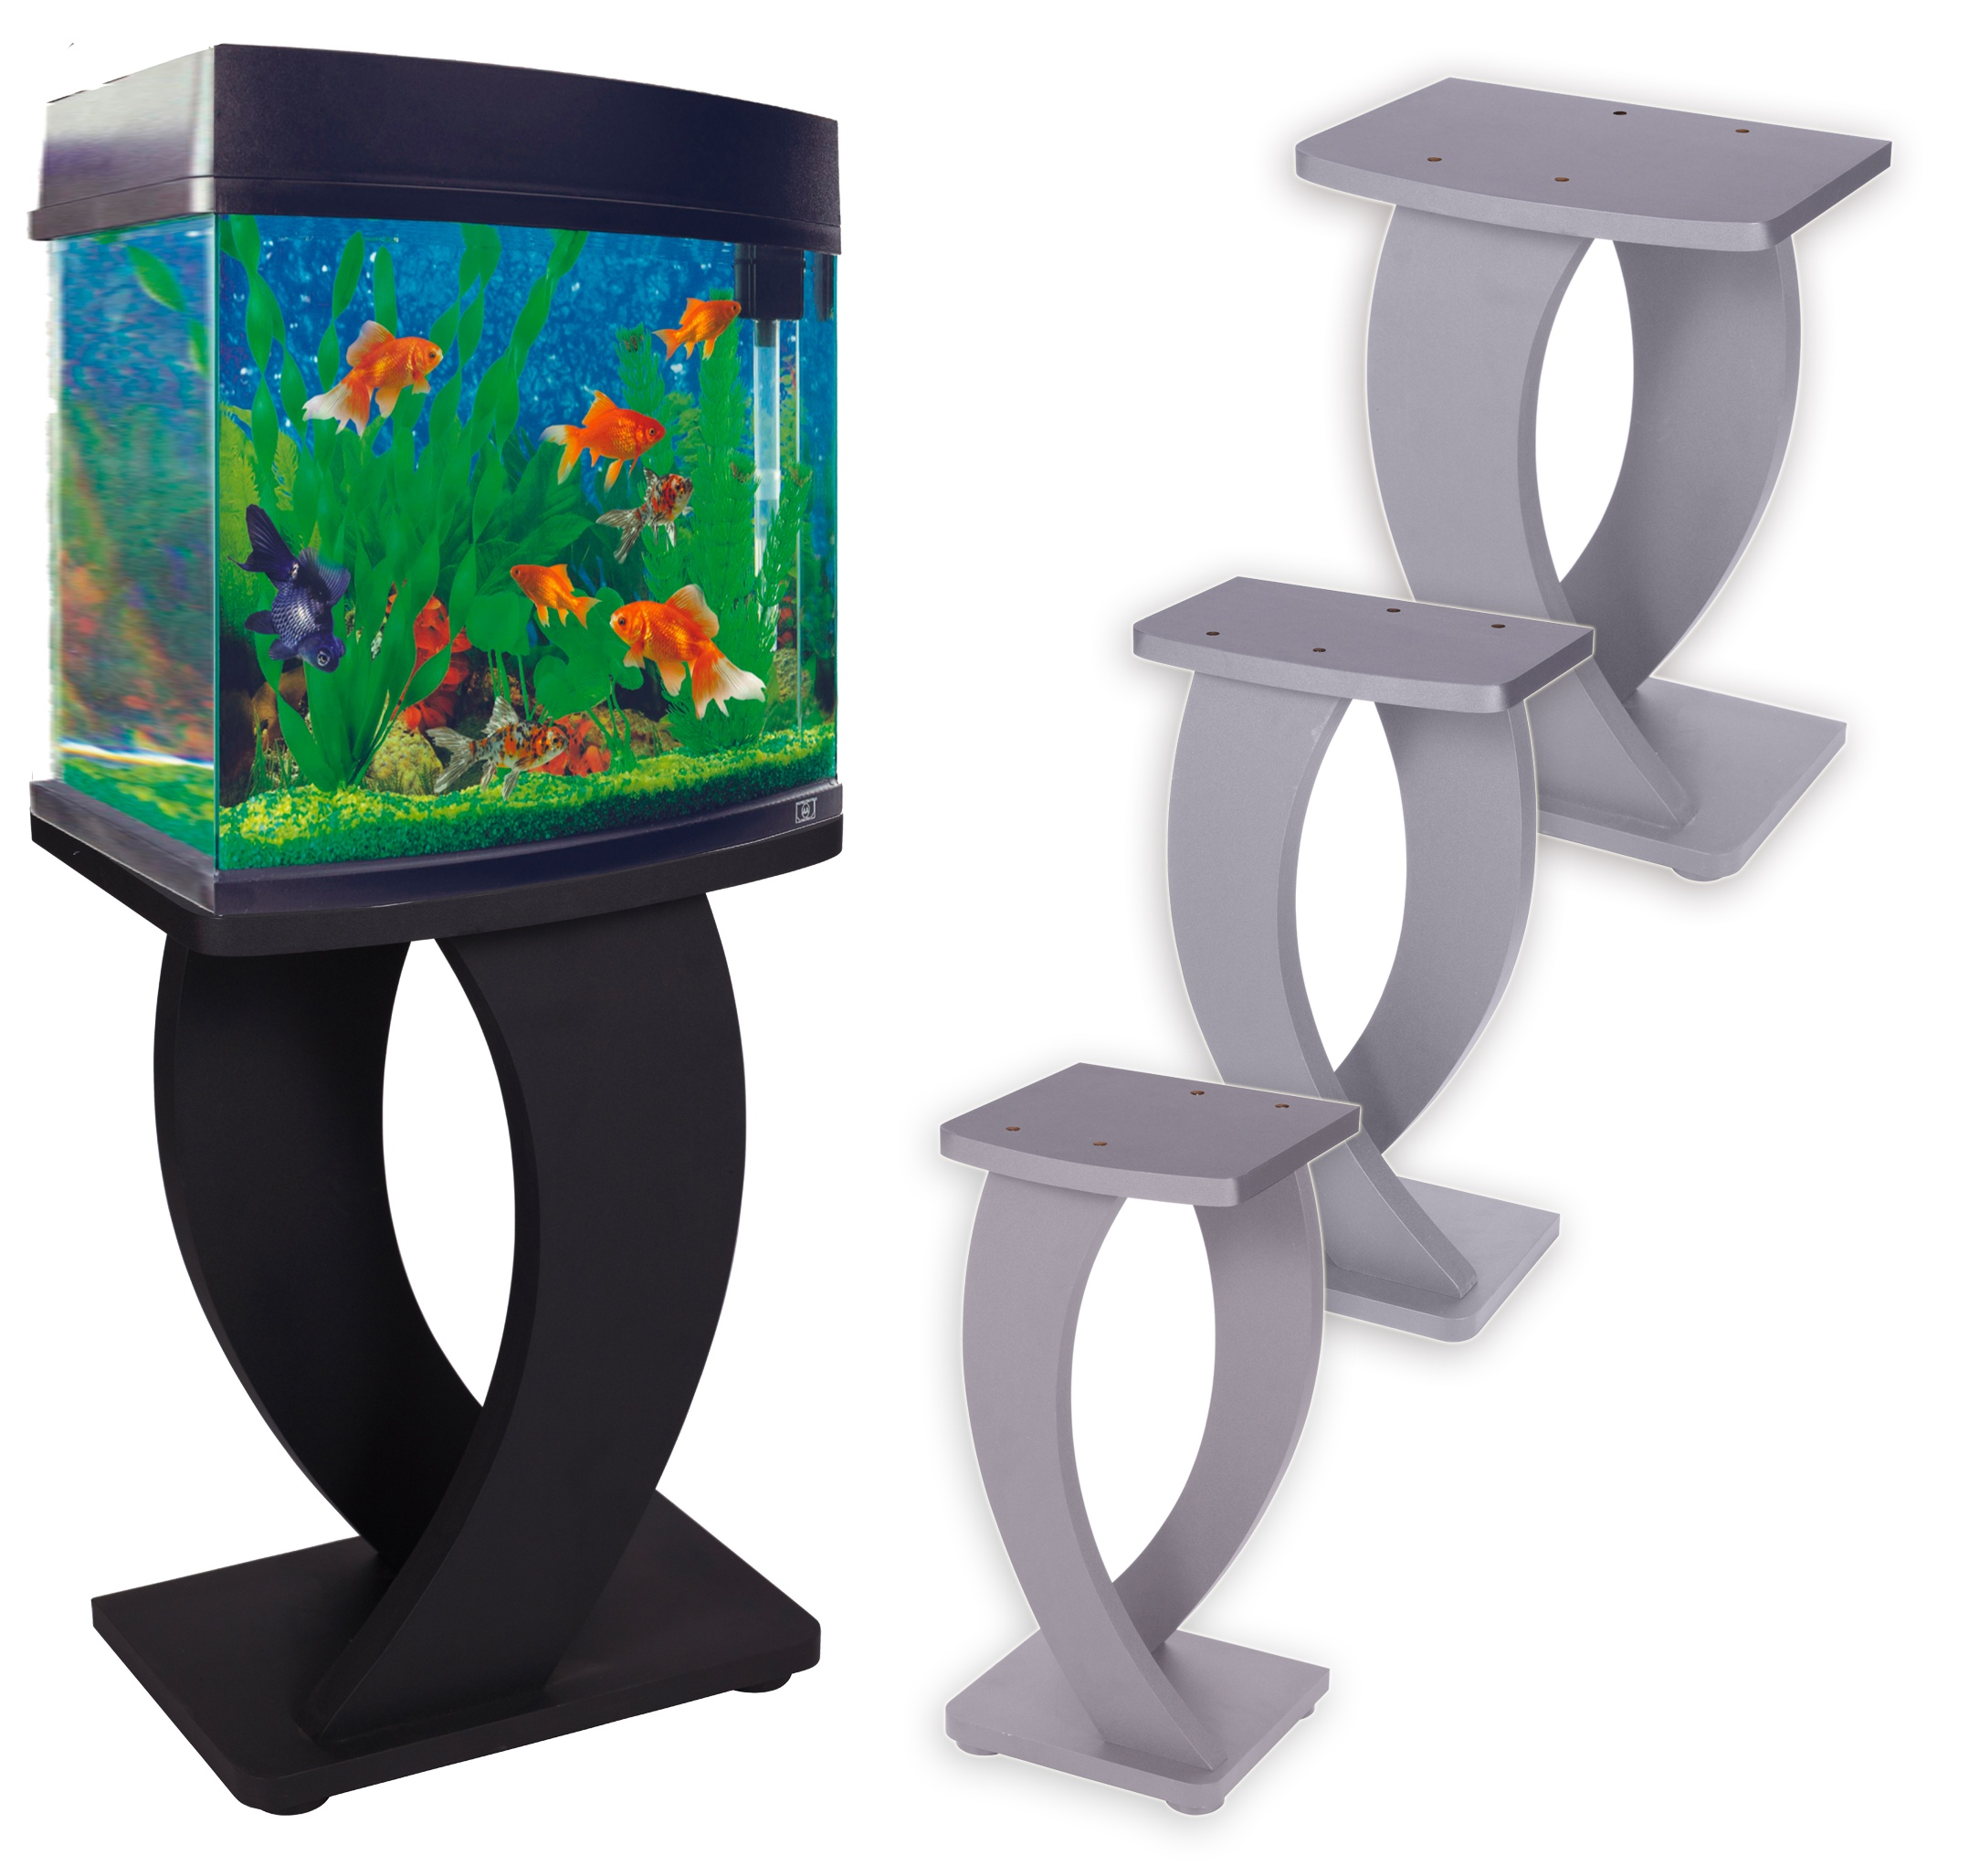 Fish tank with stand - Unbranded